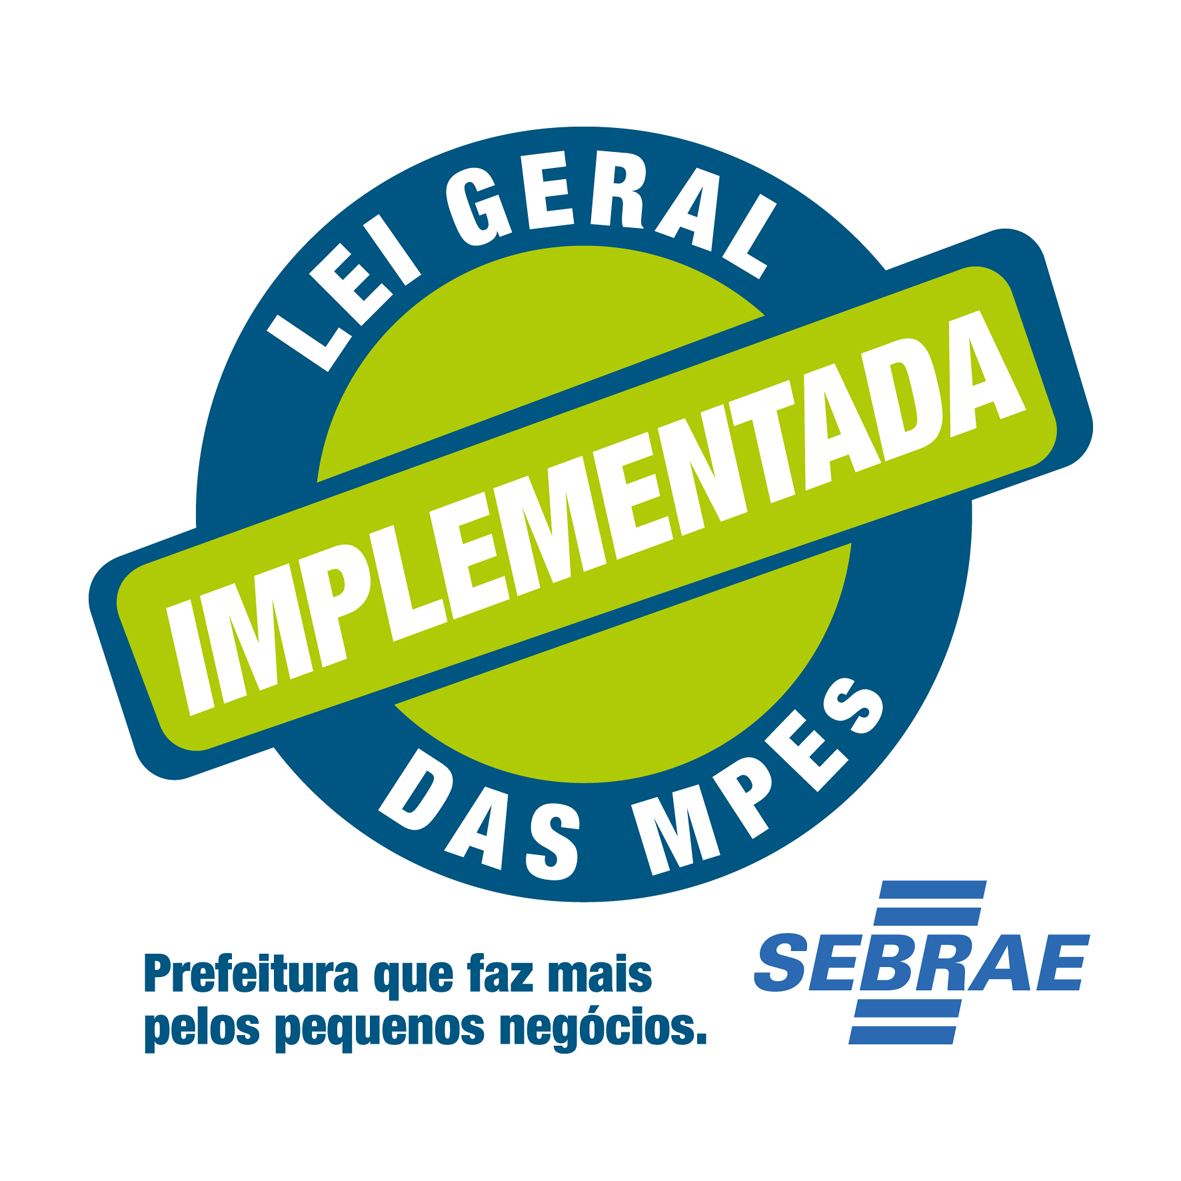 Lei Geral Implementada das MPES